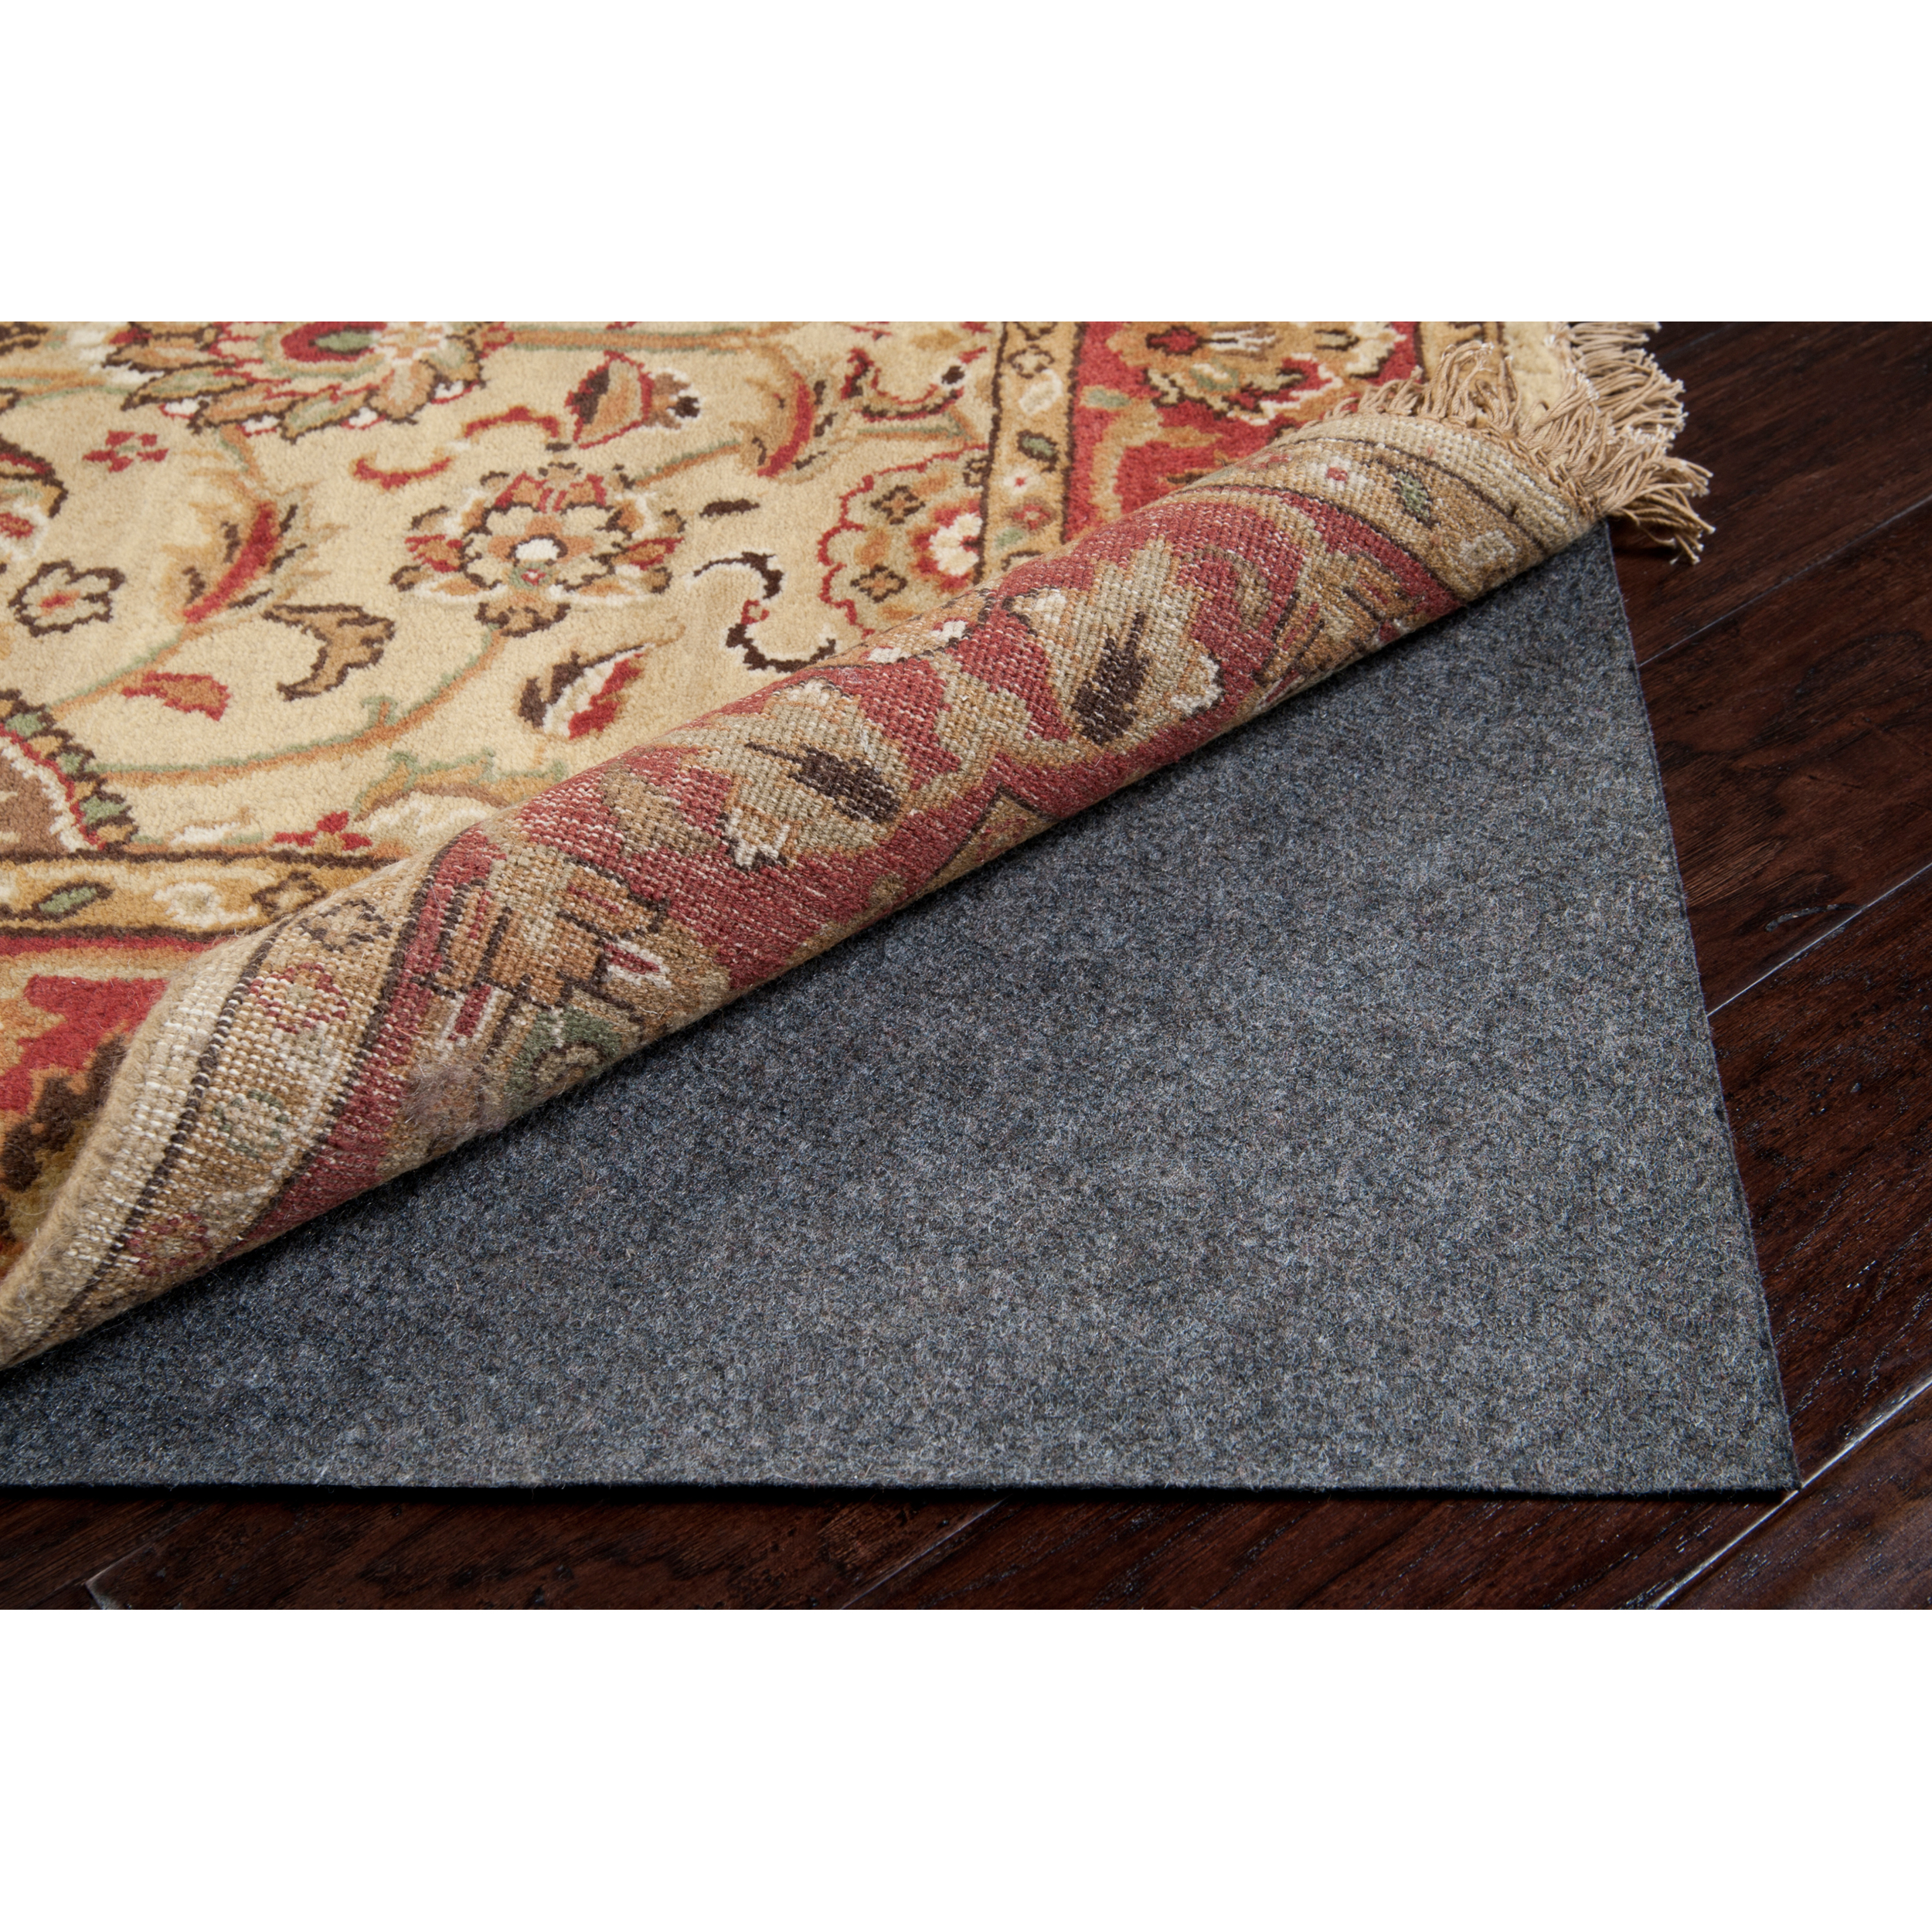 Give the protection for your hardwood floor by installing for Best material for carpet